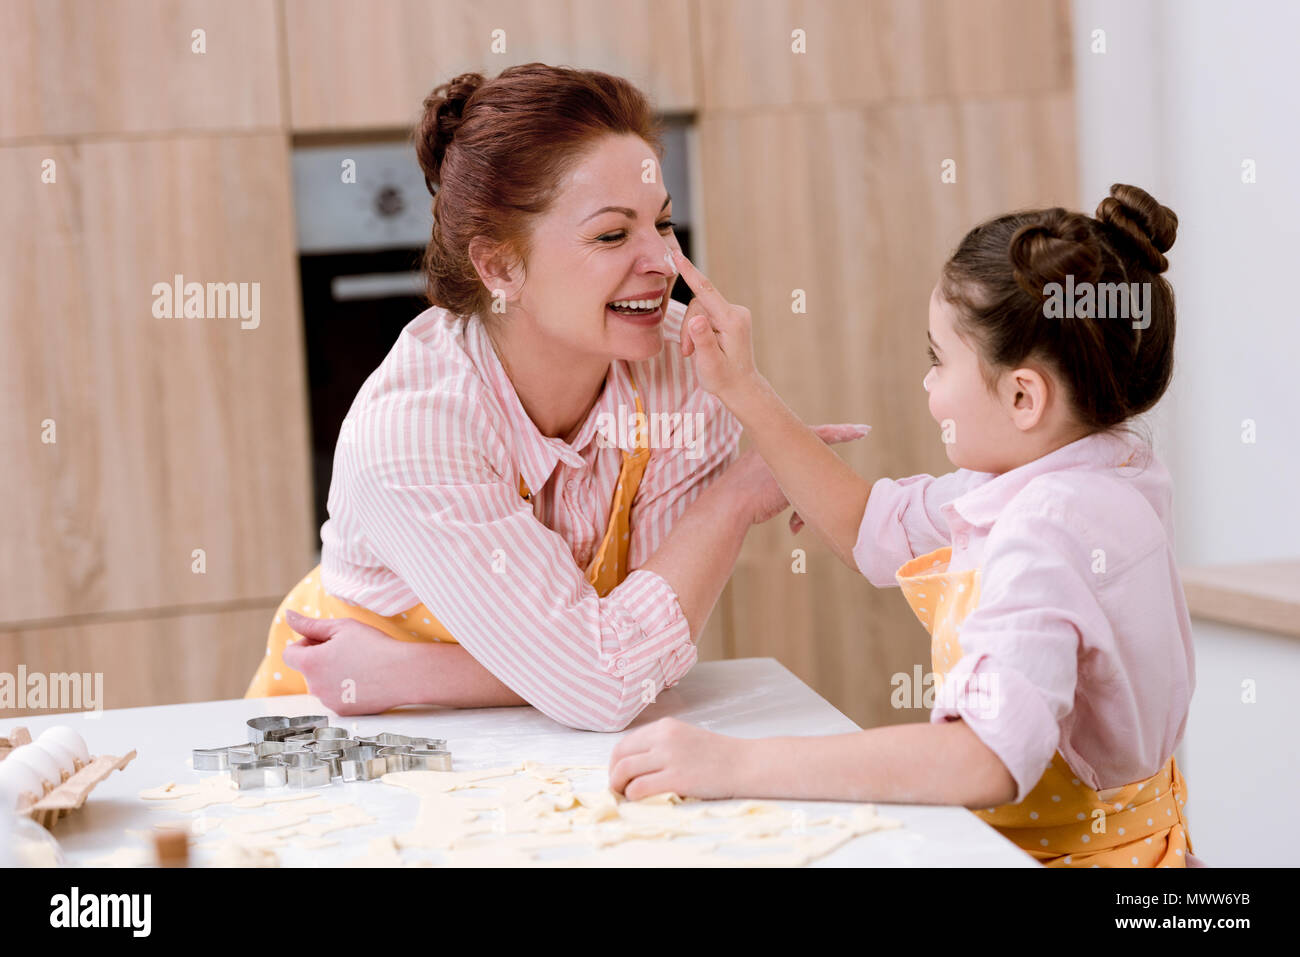 beautiful grandmother and little granddaughter playing with flour at kitchen while cooking - Stock Image